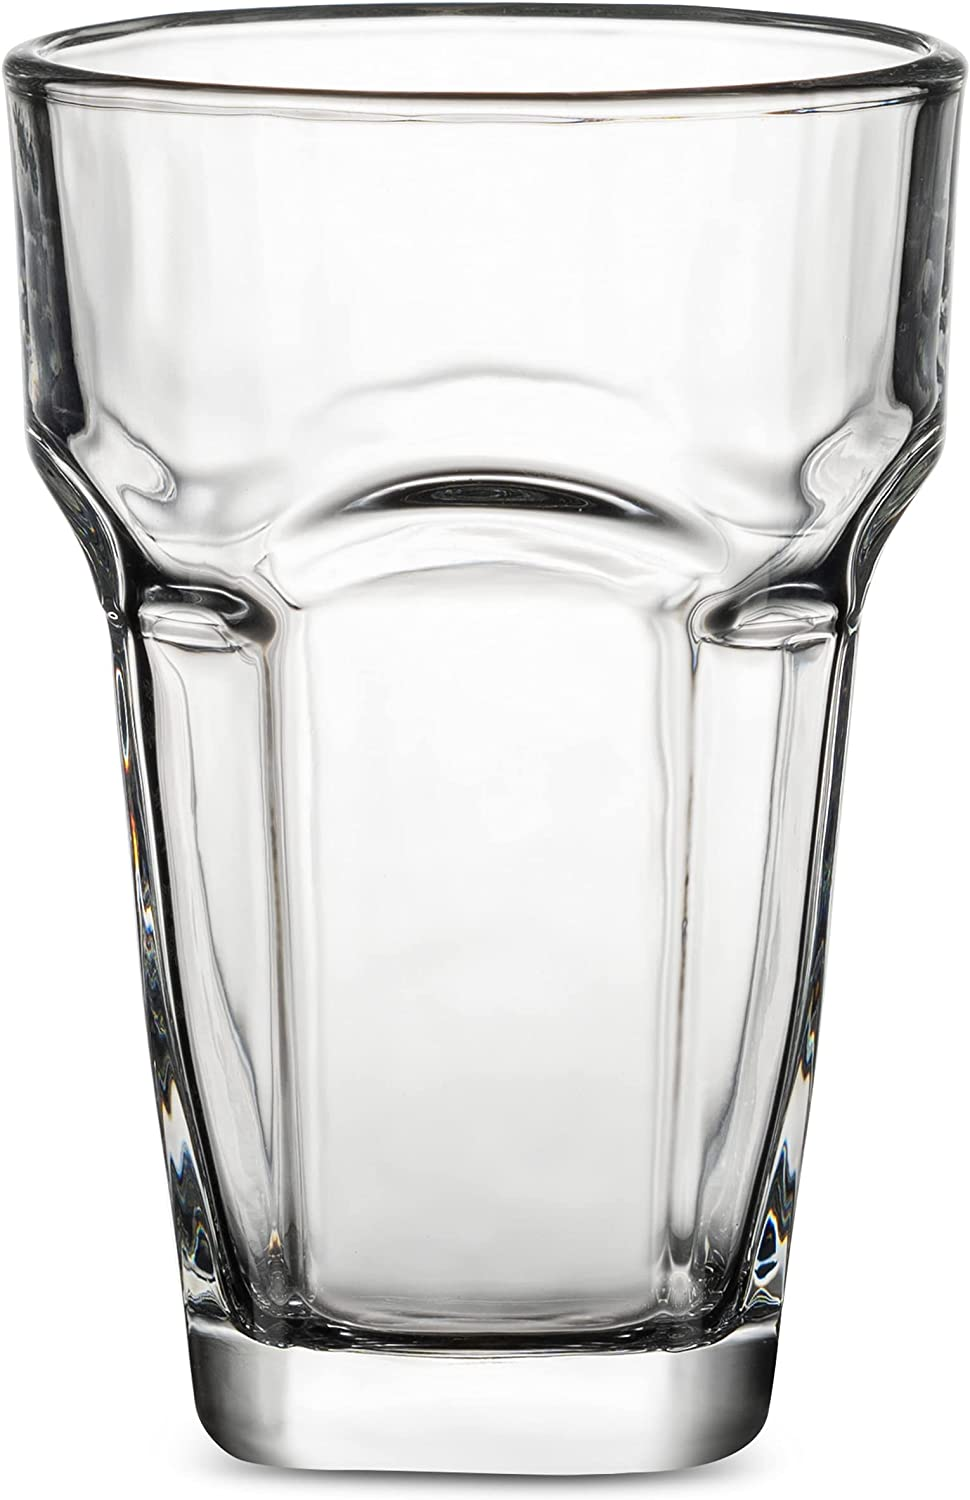 Highball Glasses, Set Of 6 Stackable 14 oz. Juice & Water Glasses for Soda, Coke, Beer, Spirits and Everyday Use.